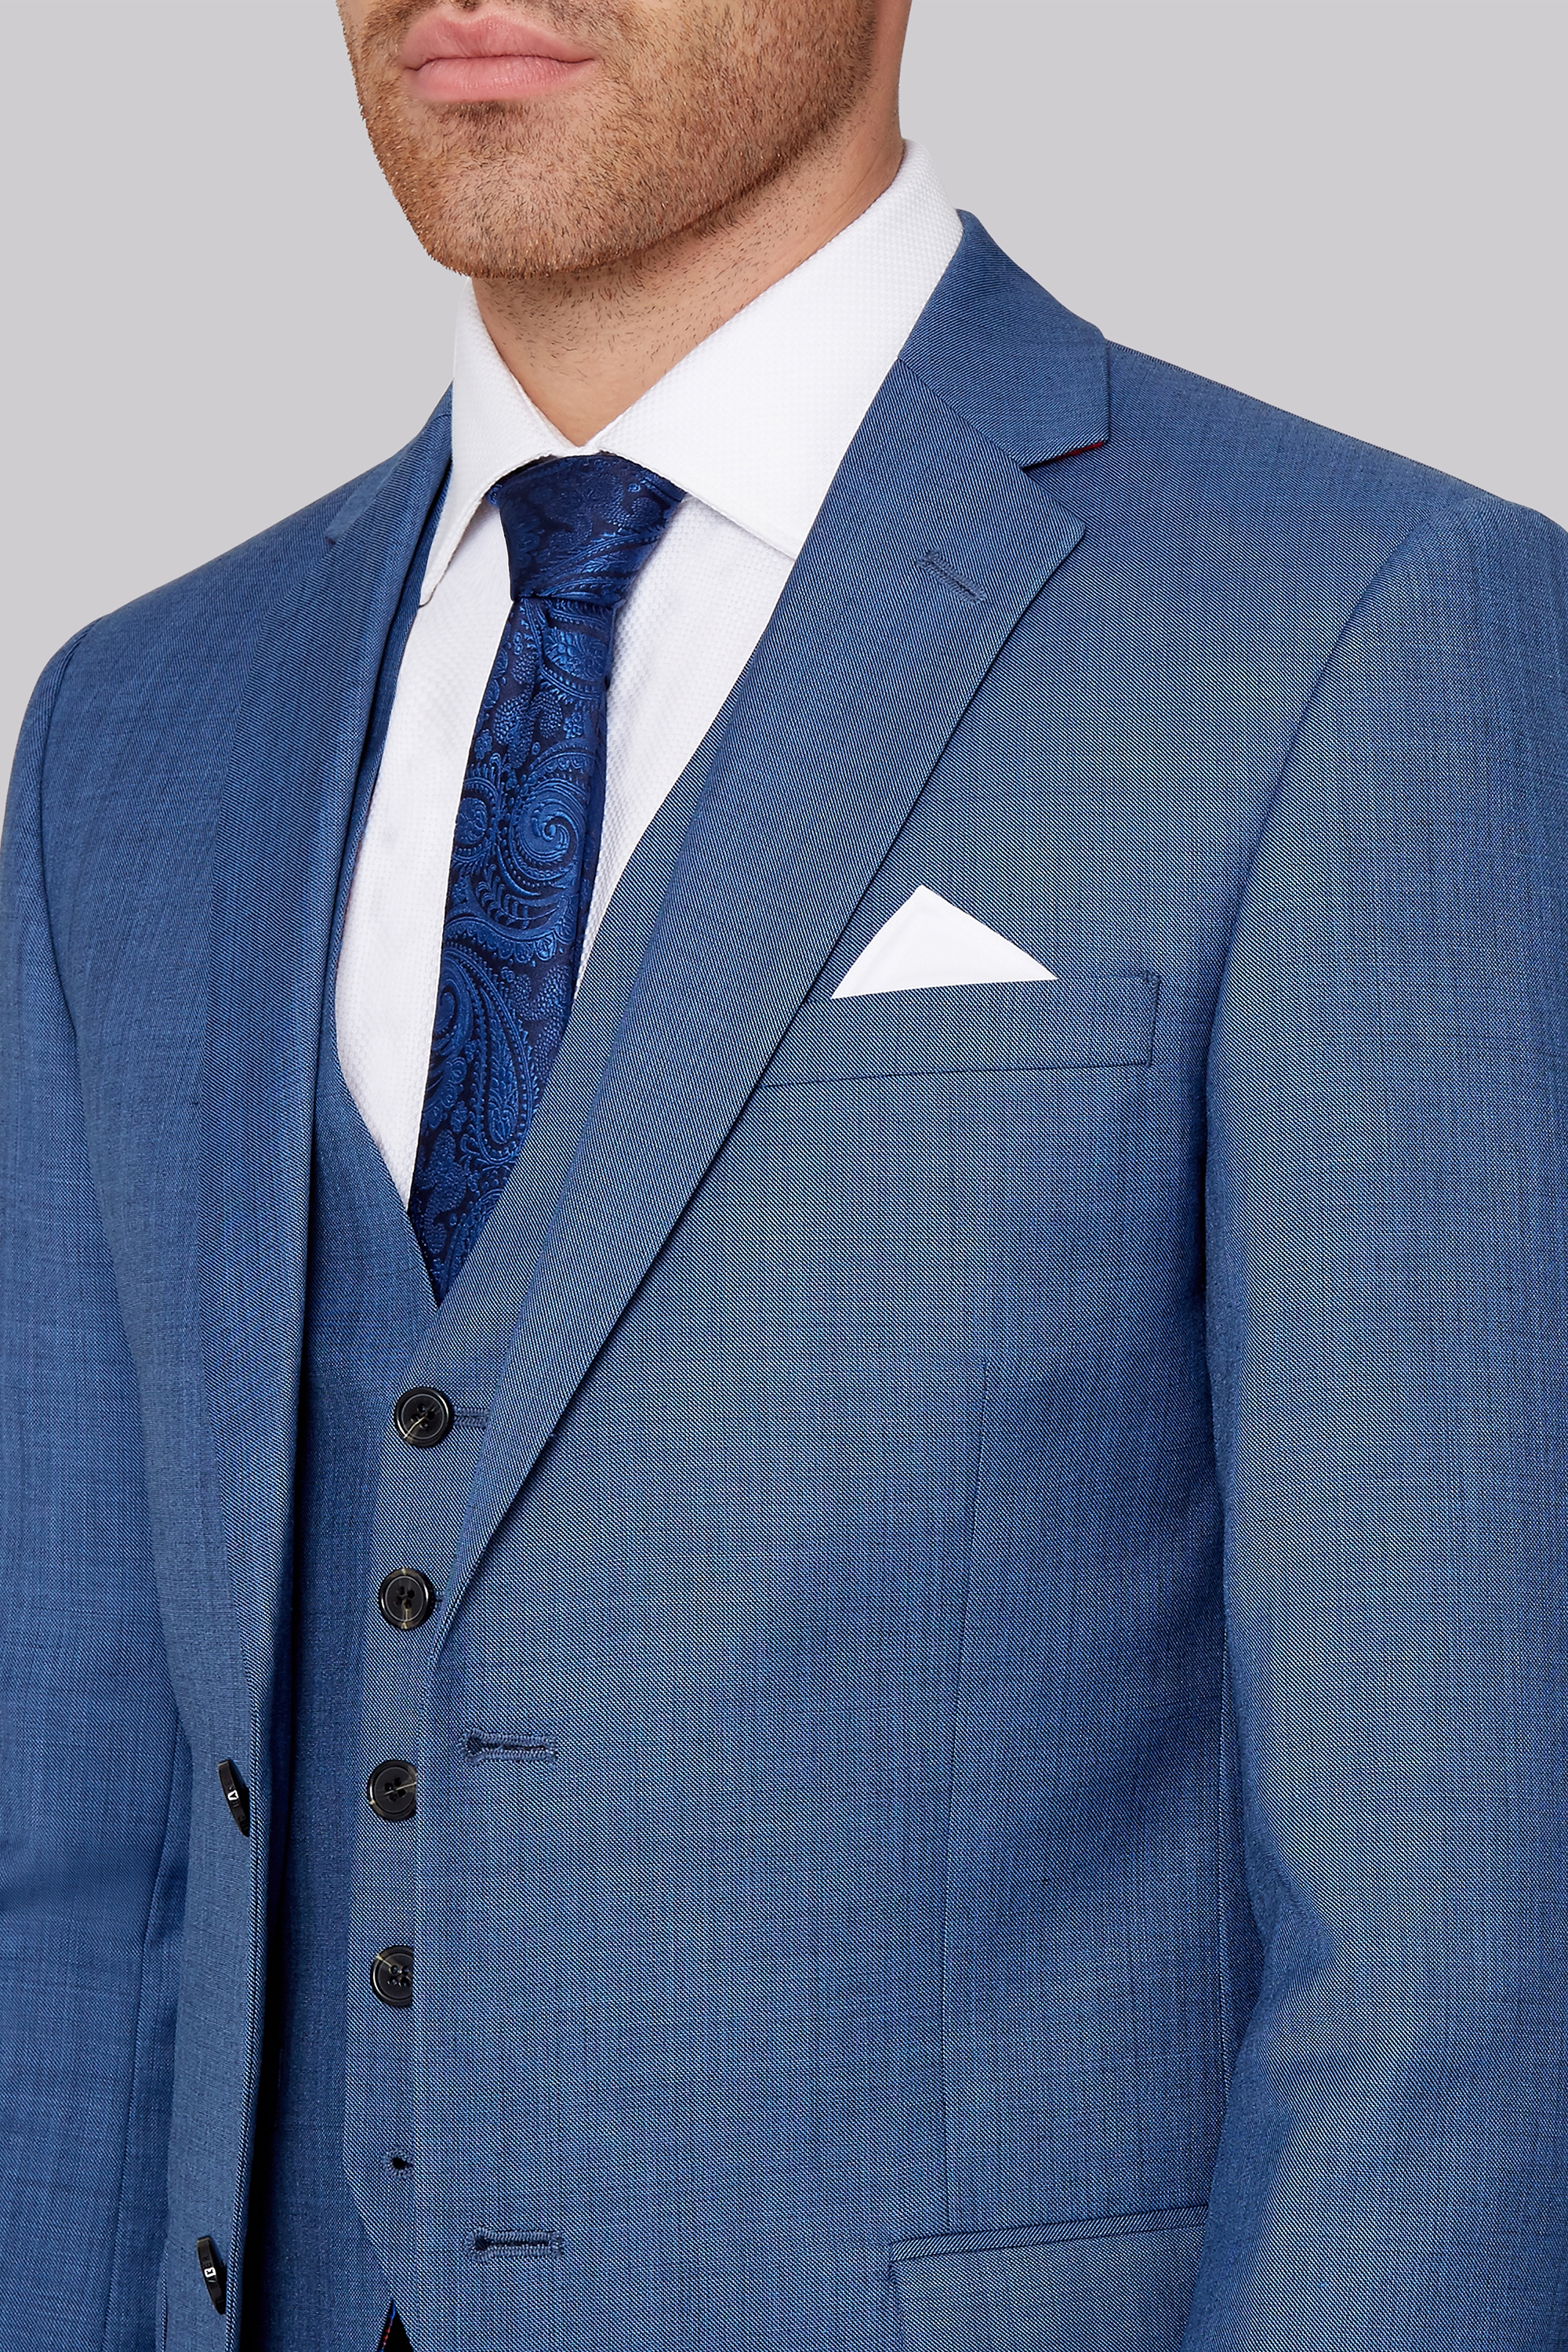 Ted Baker Tailored Fit French Blue Sharkskin Jacket